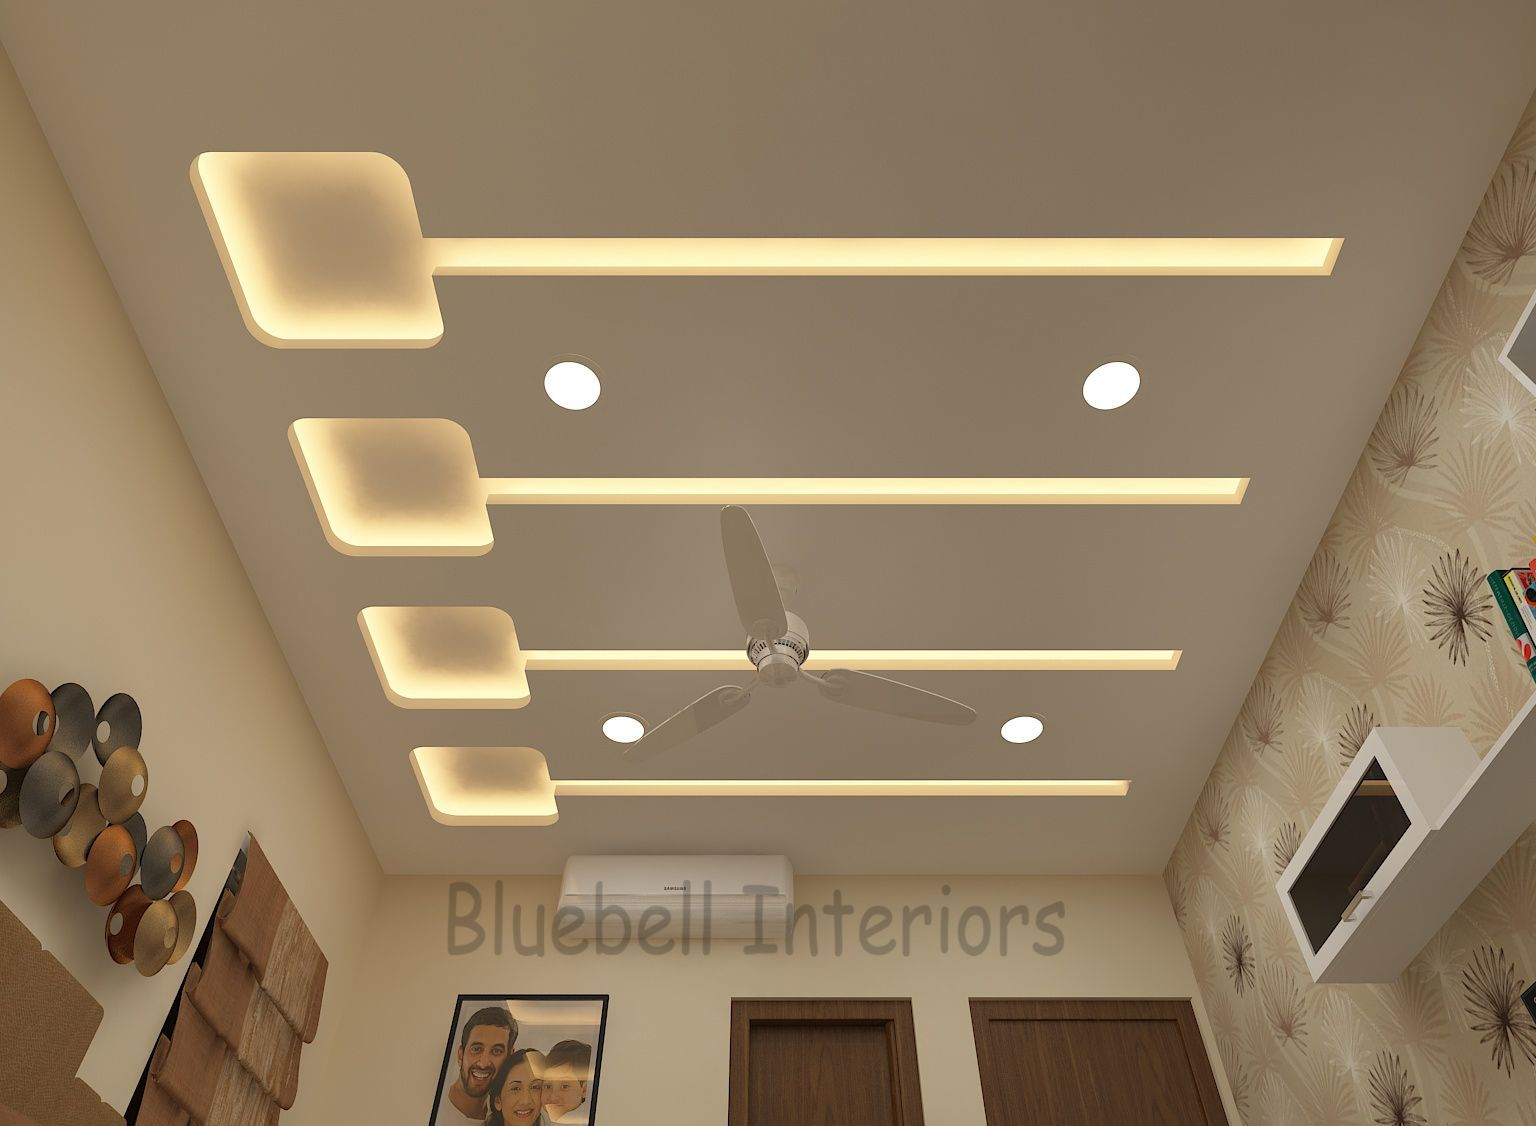 Bedroom False Ceiling Gypsum Ceiling Lighting Design In 2020